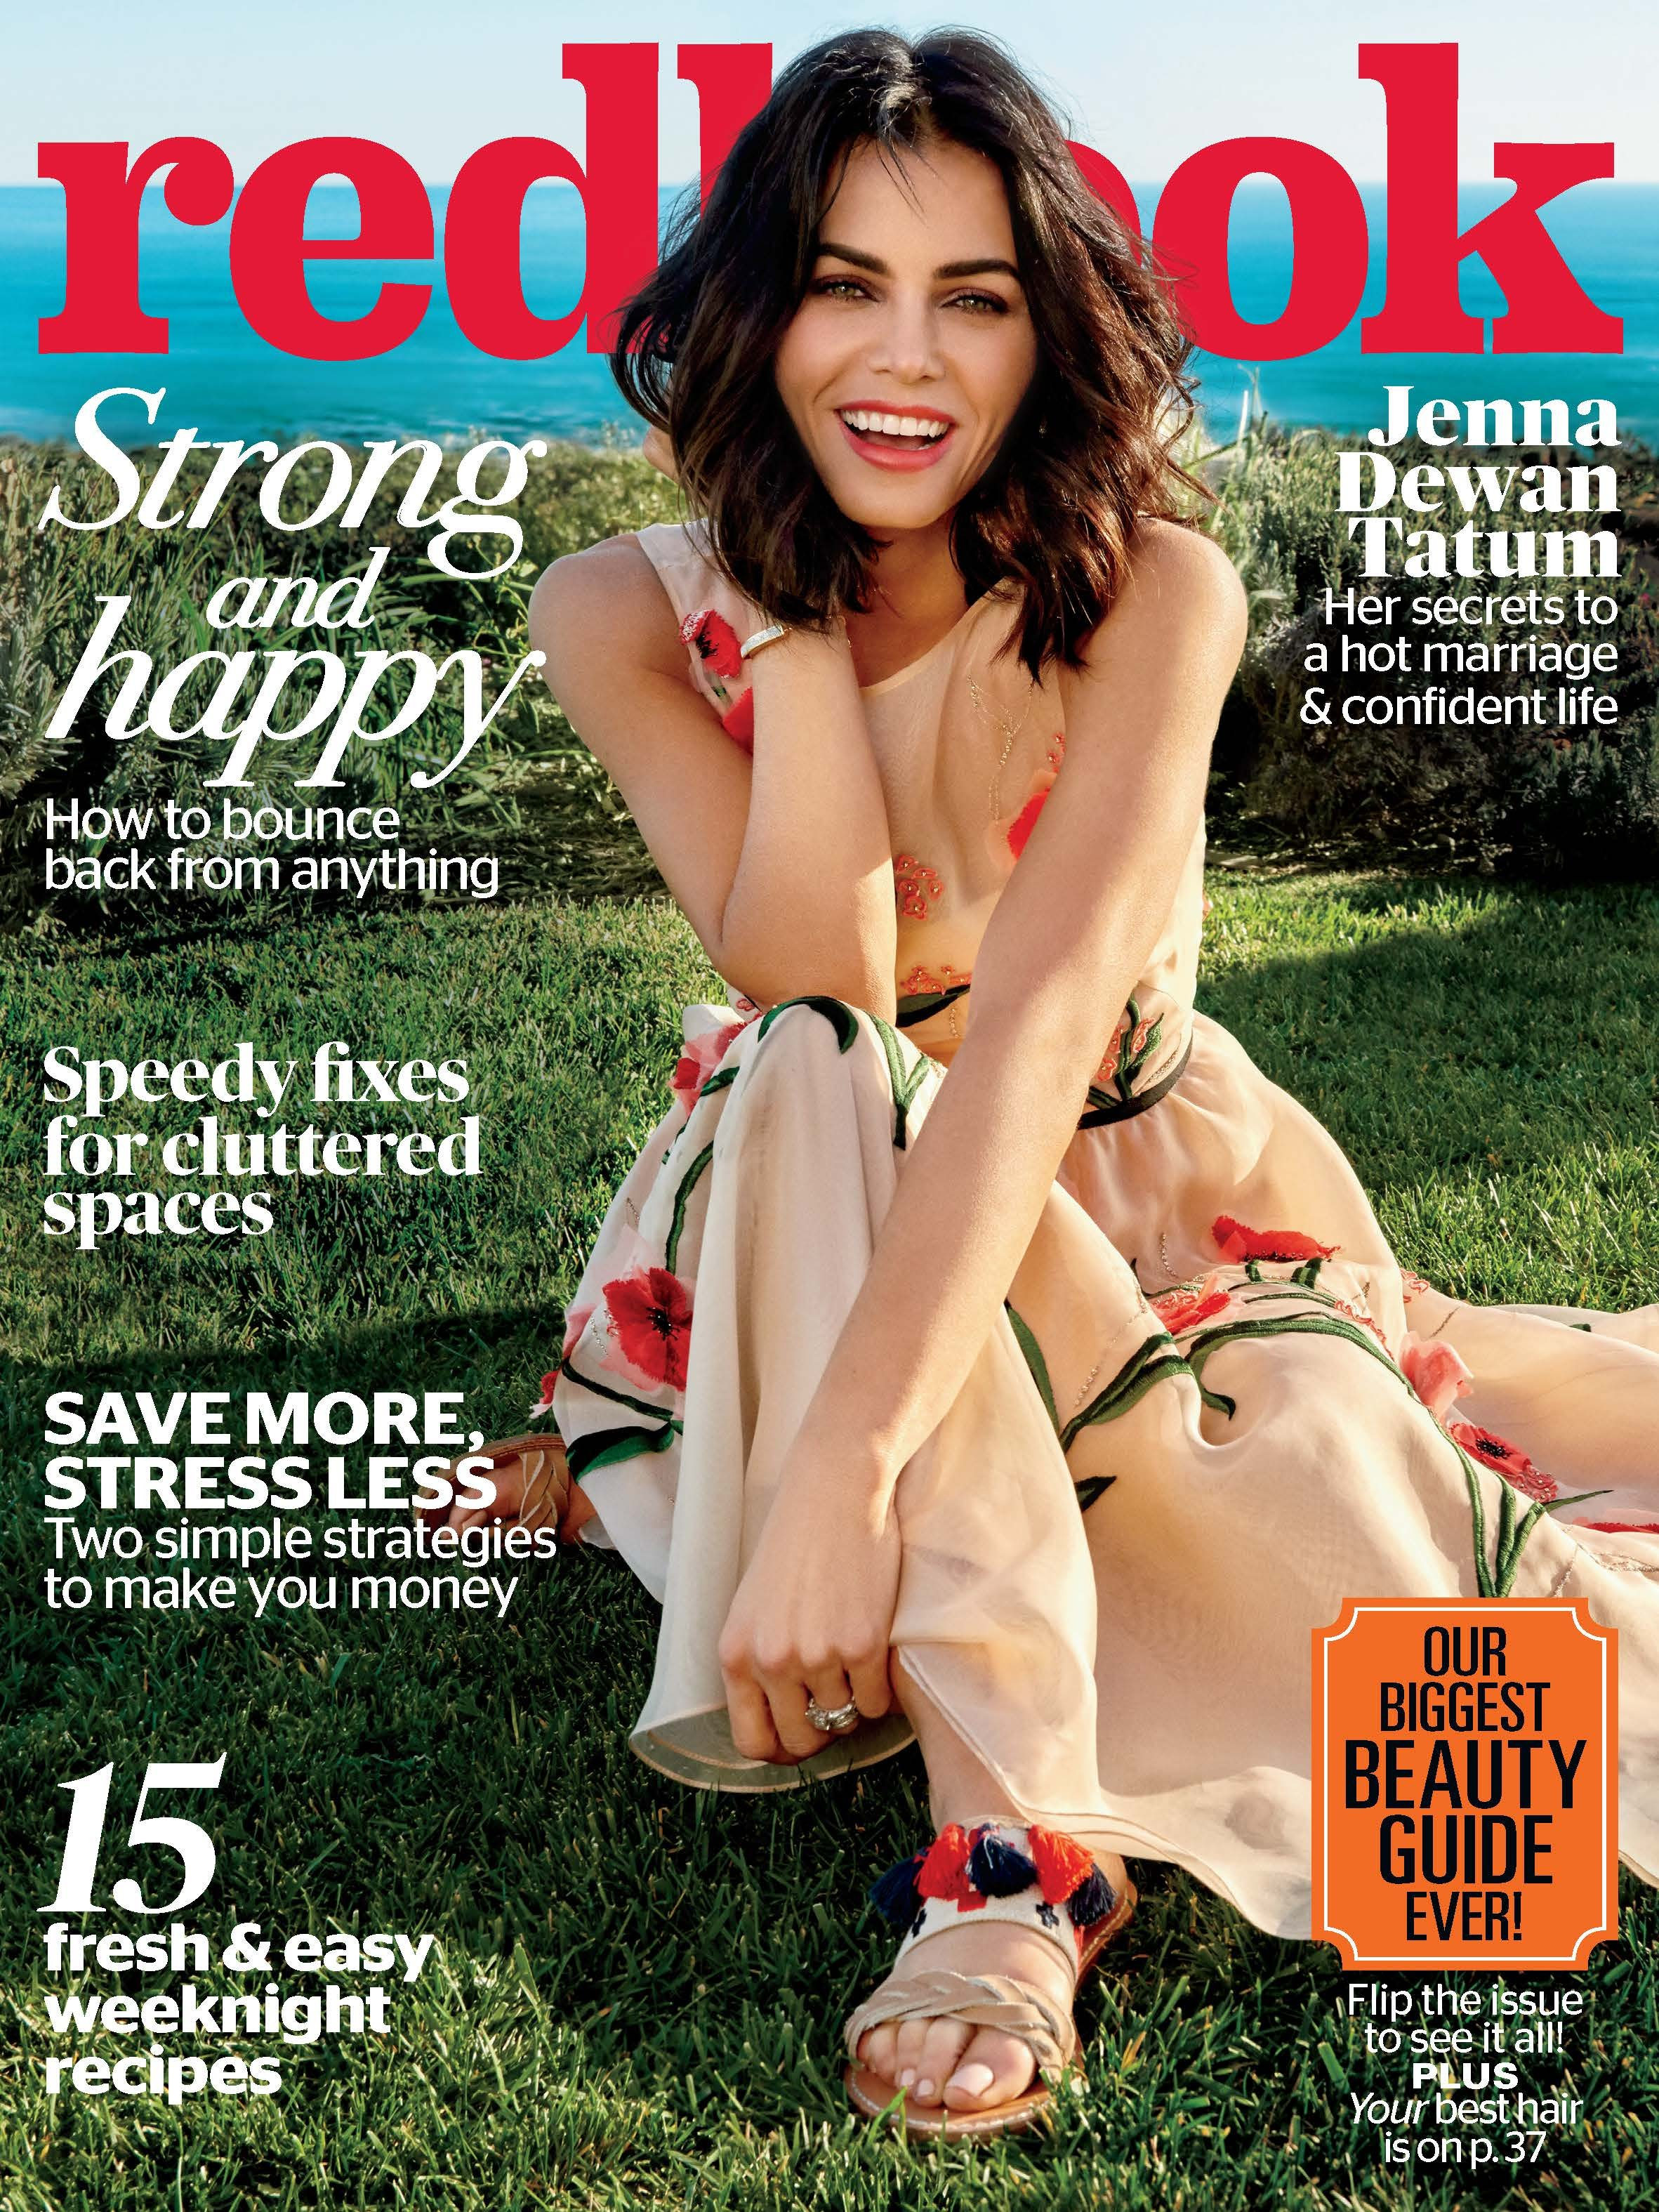 Jenna Dewan Tatum covers the May 2017 issue of Redbook.